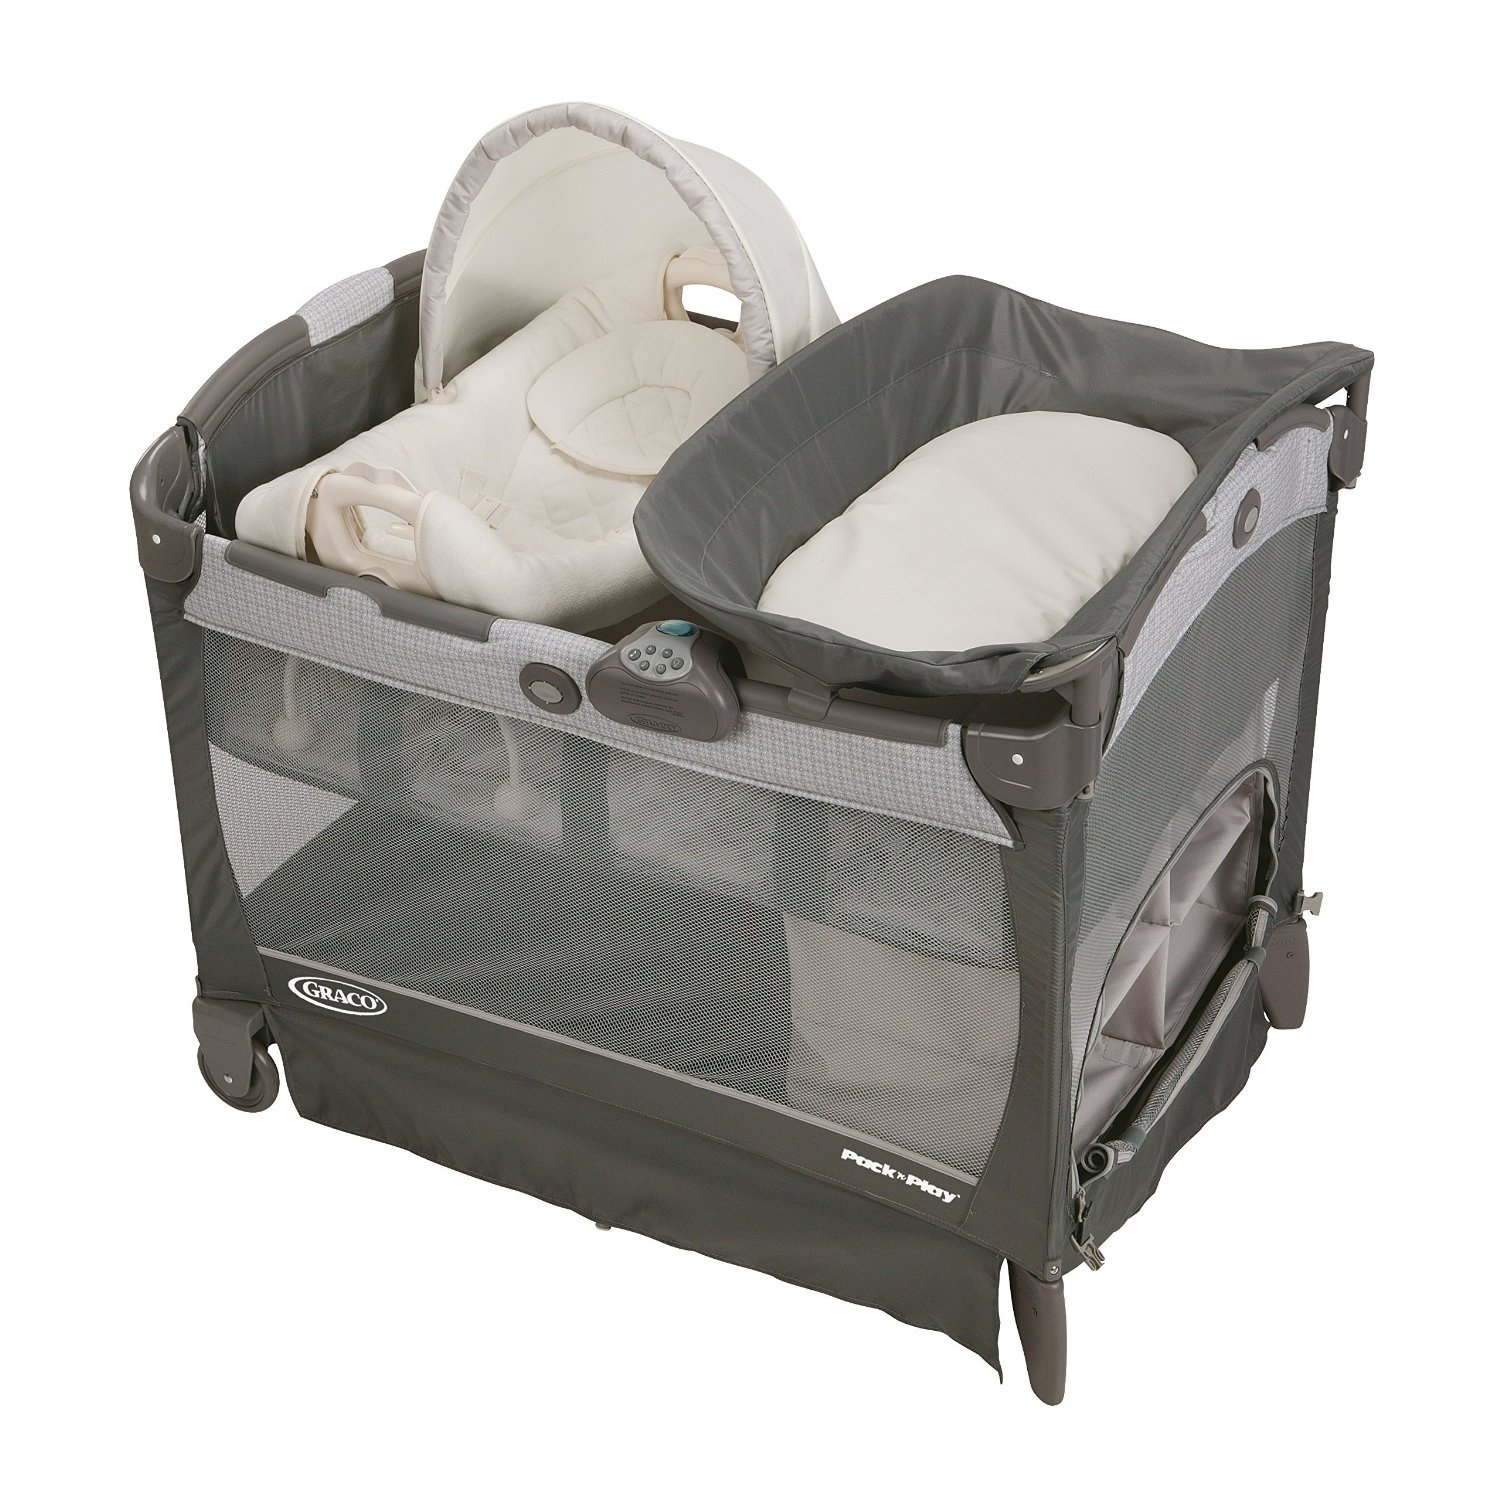 Graco Pack 'n Play Playard with Cuddle Cove Baby Seat, Glacier